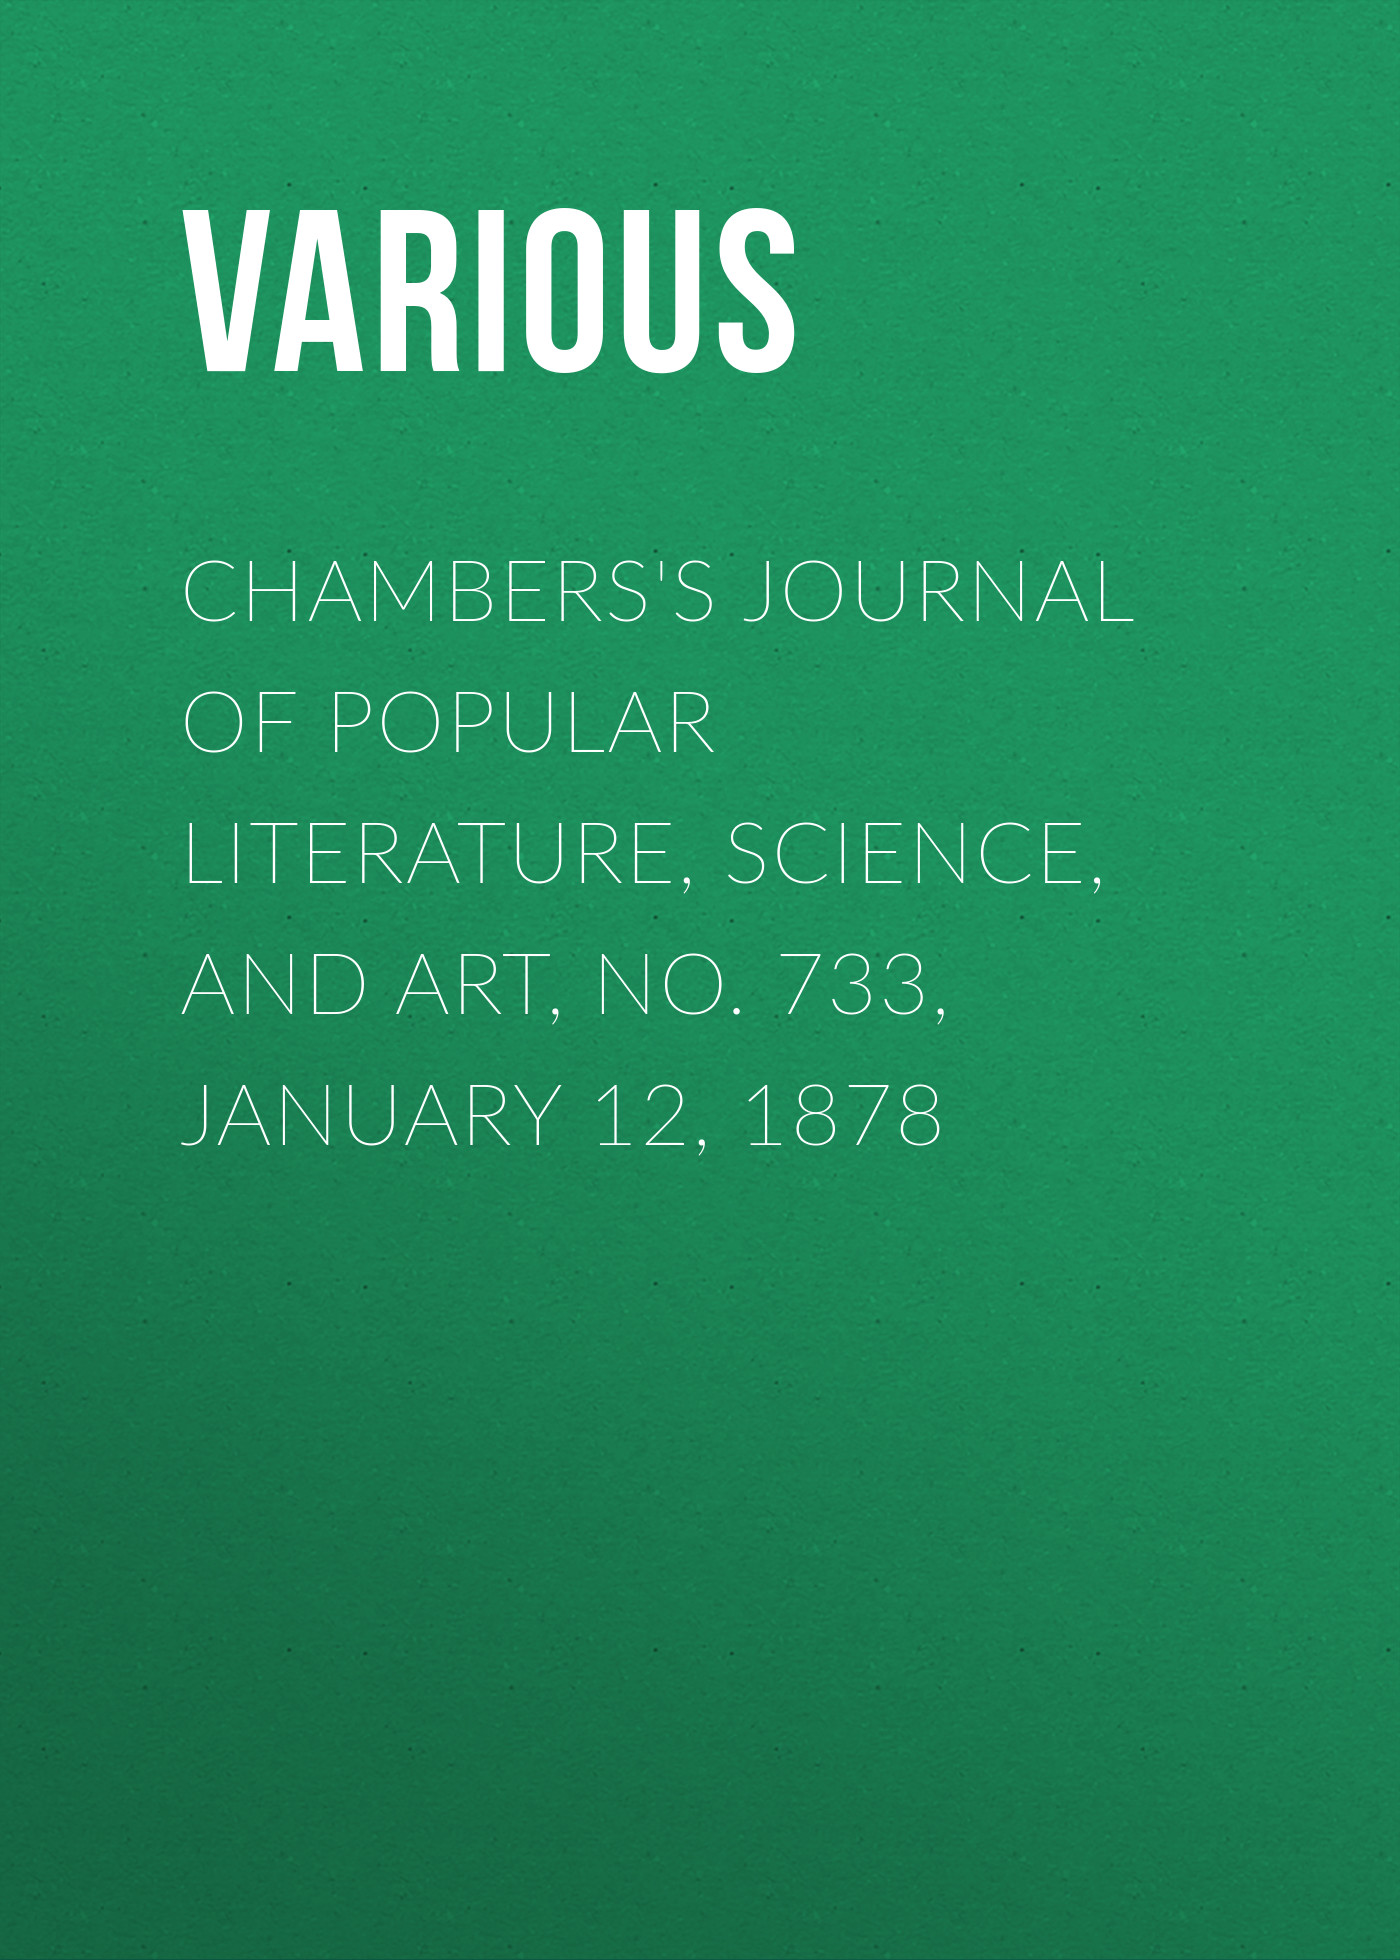 Various Chambers's Journal of Popular Literature, Science, and Art, No. 733, January 12, 1878 various chambers s journal of popular literature science and art no 709